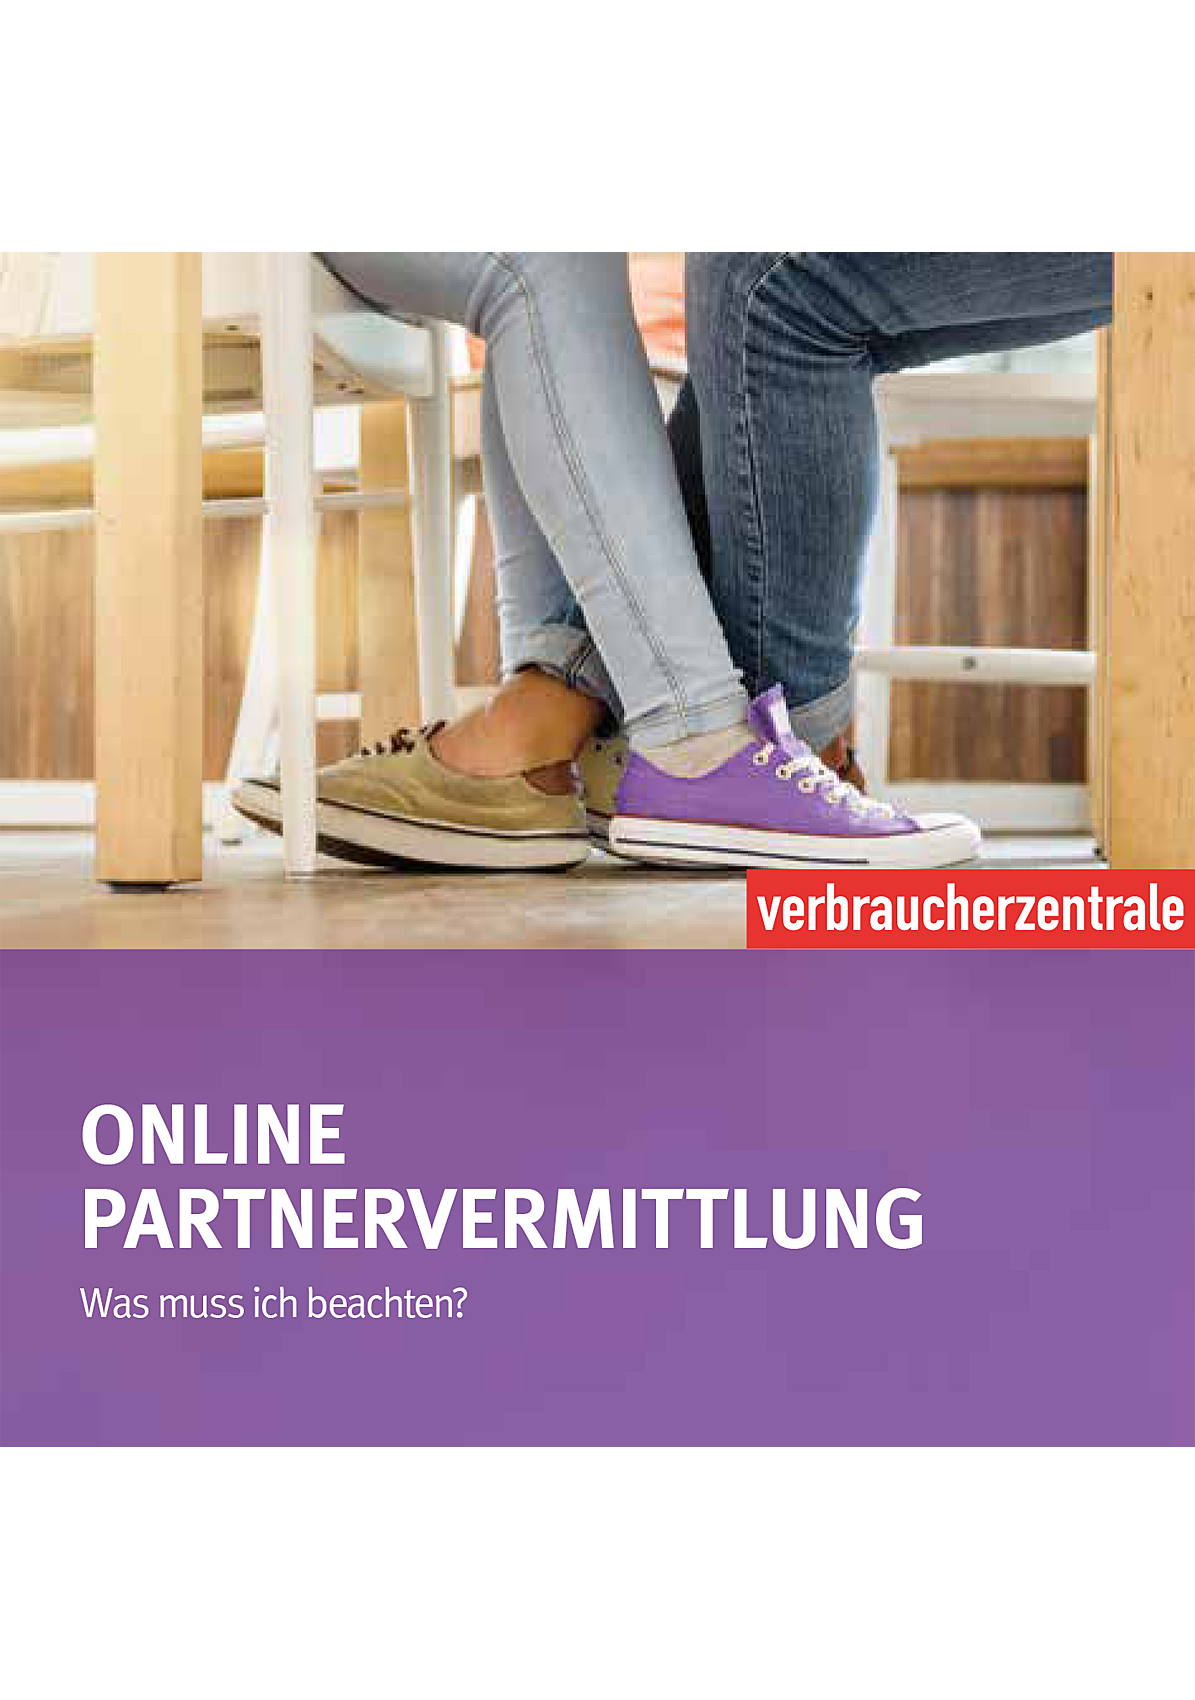 Partnervermittlung 0900